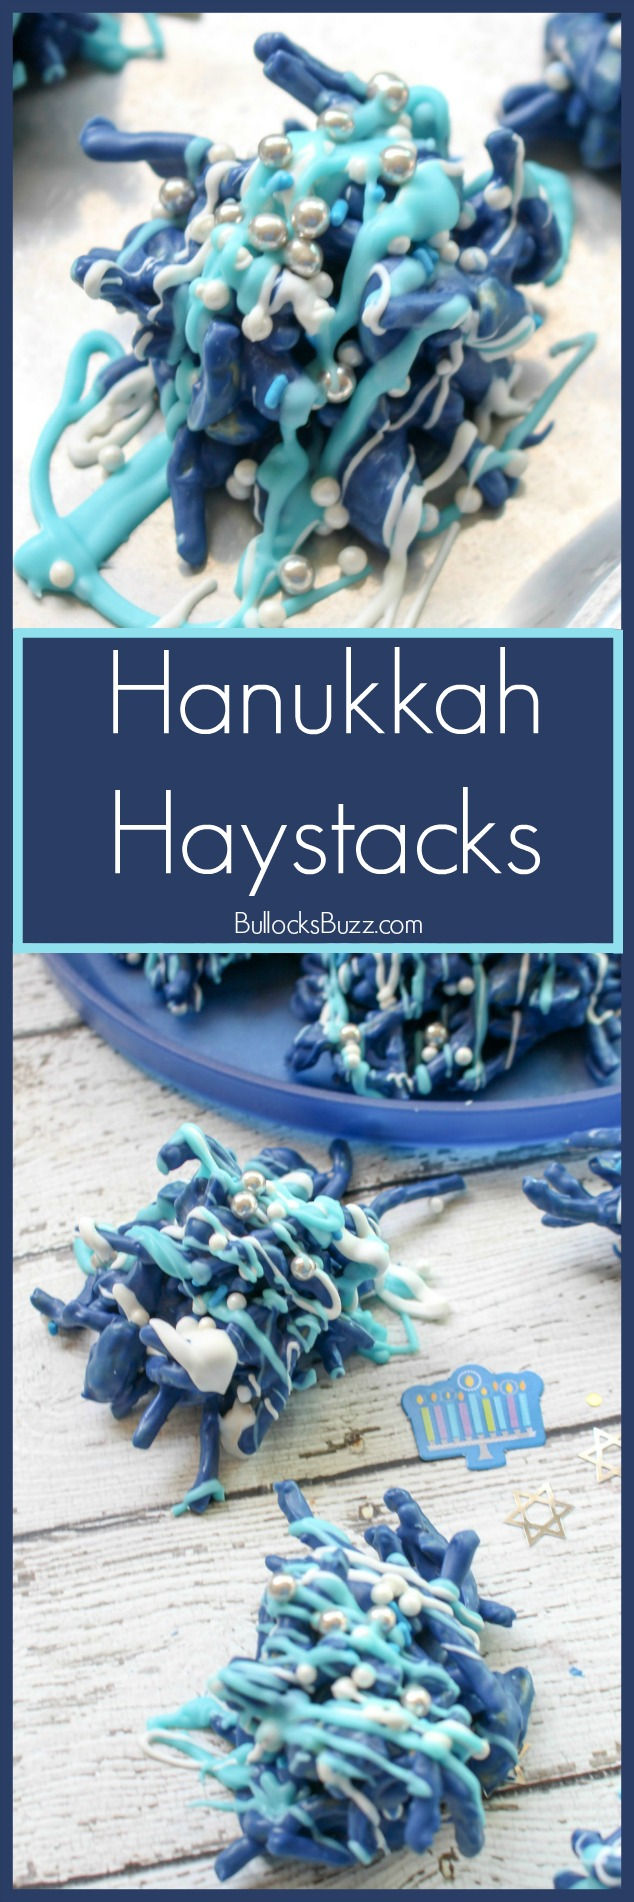 The perfect mix of salty and sweet, this no bake Hanukkah Haystacks recipe is made with chow mein noodles and cocktail peanuts coated with melted chocolate.